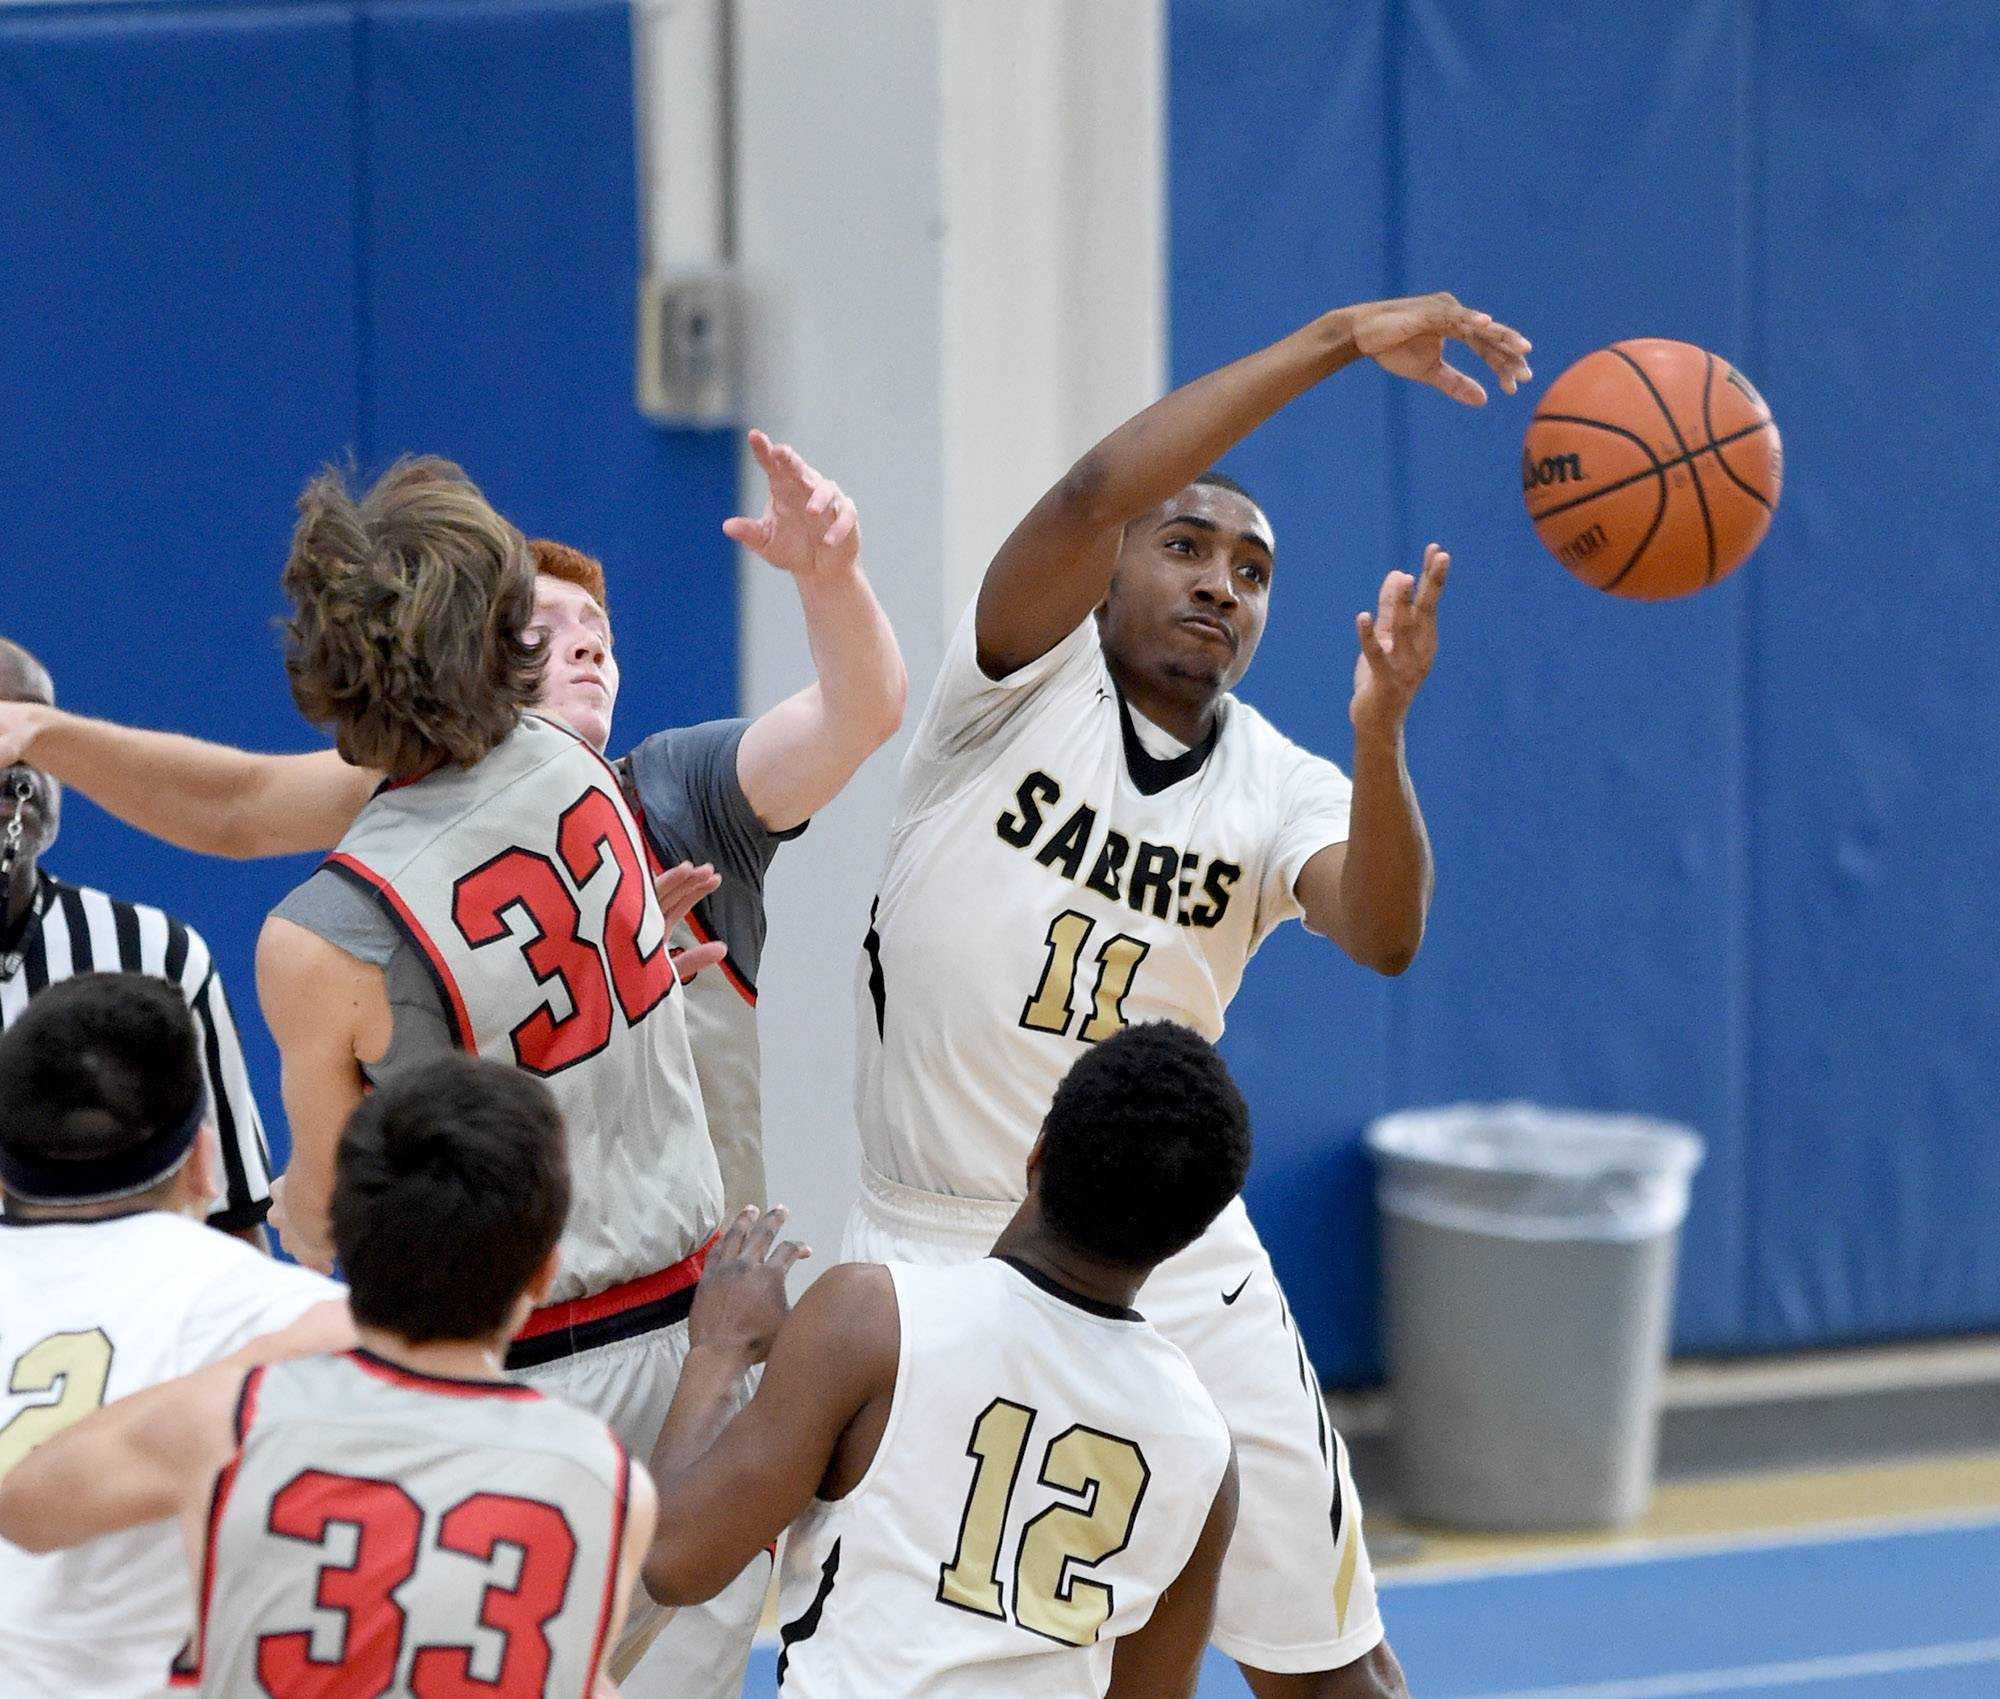 Streamwood's Keenan Evans (11) clears a lose ball under the Mundelein bucket on Saturday at Lake Zurich.